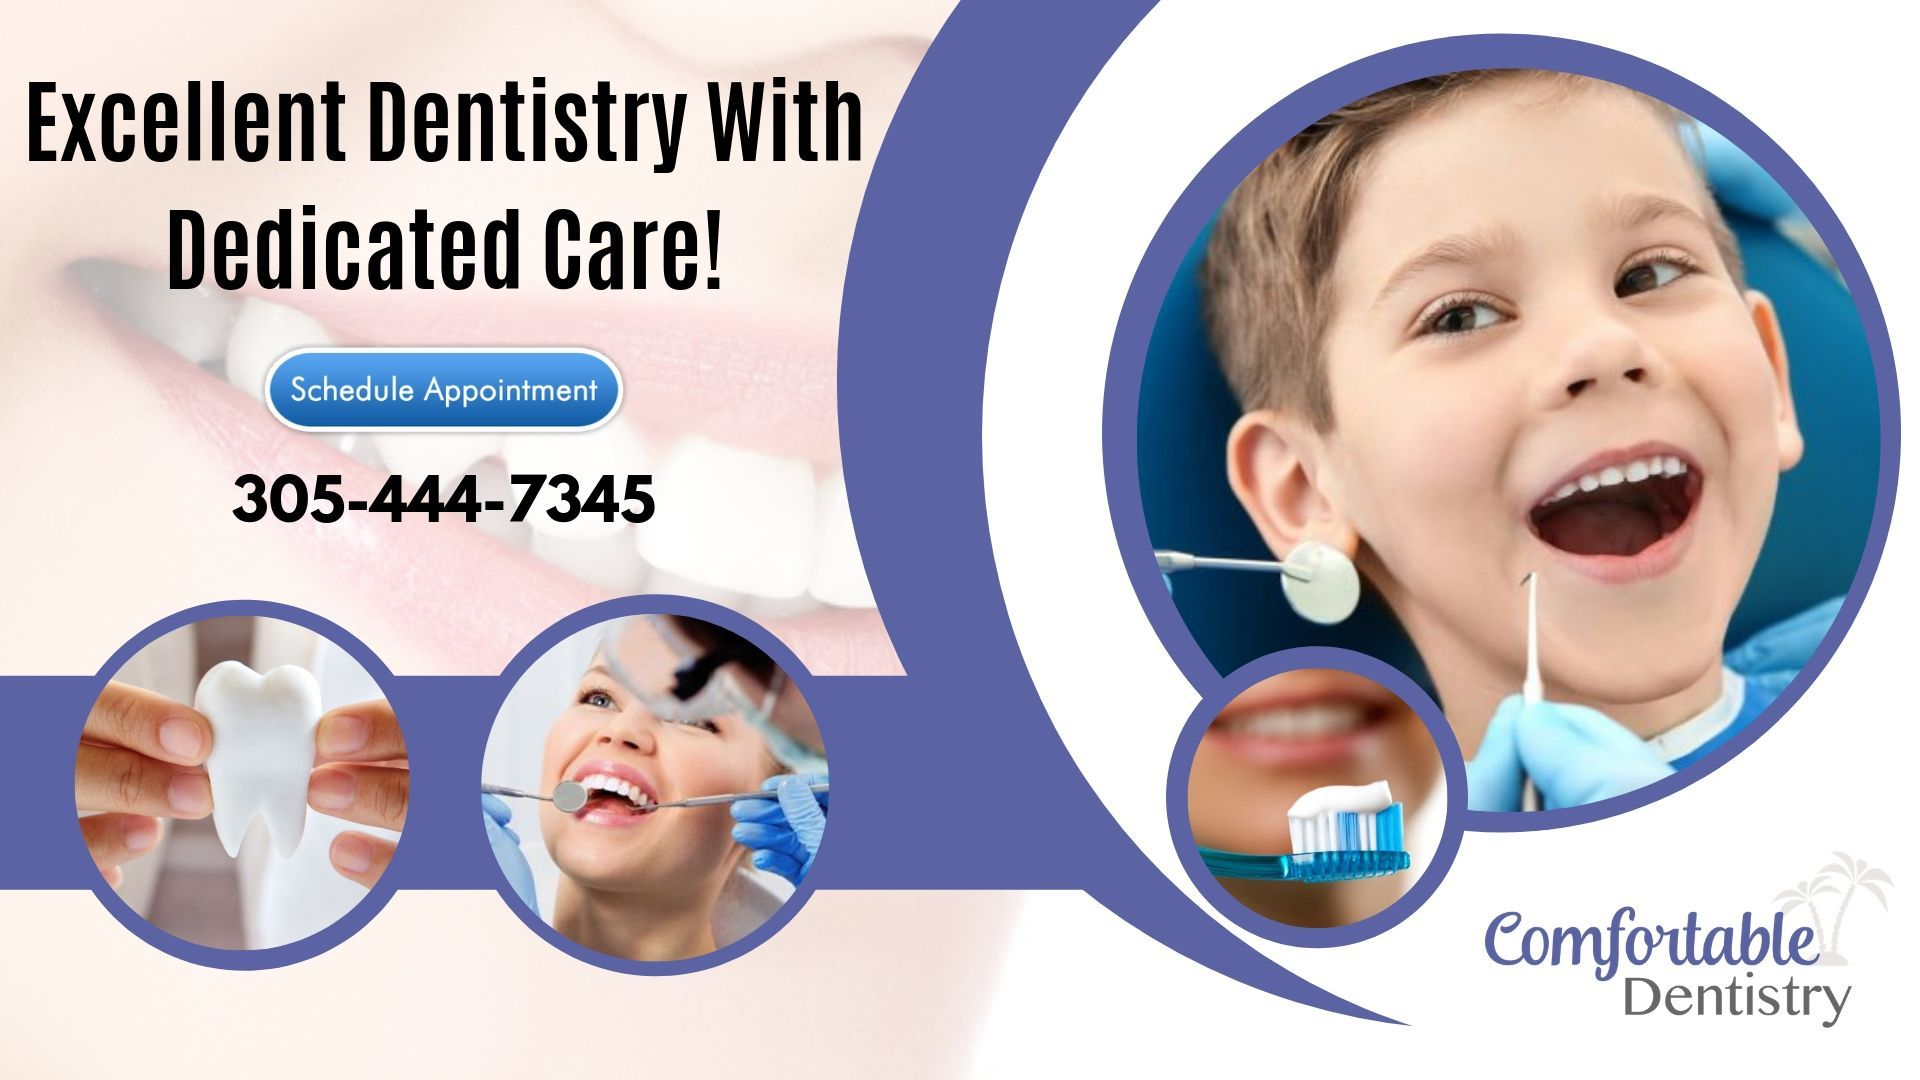 If you are looking for a professional dental clinic with a